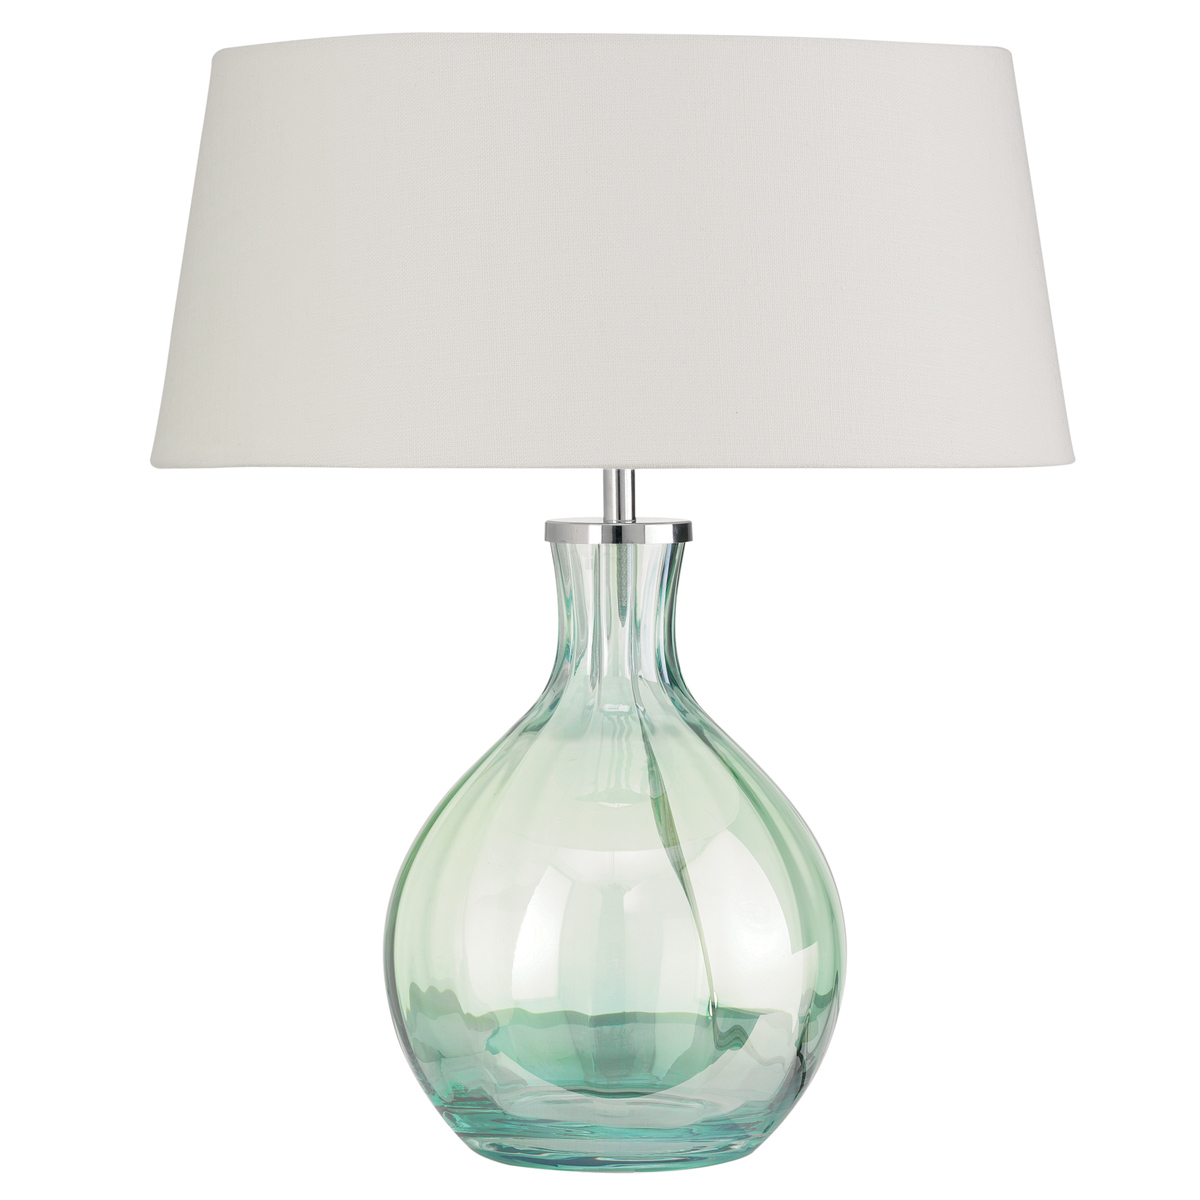 Bedroom Table Lamps on Lamp In Antique Green Table Lamps Lighting ...